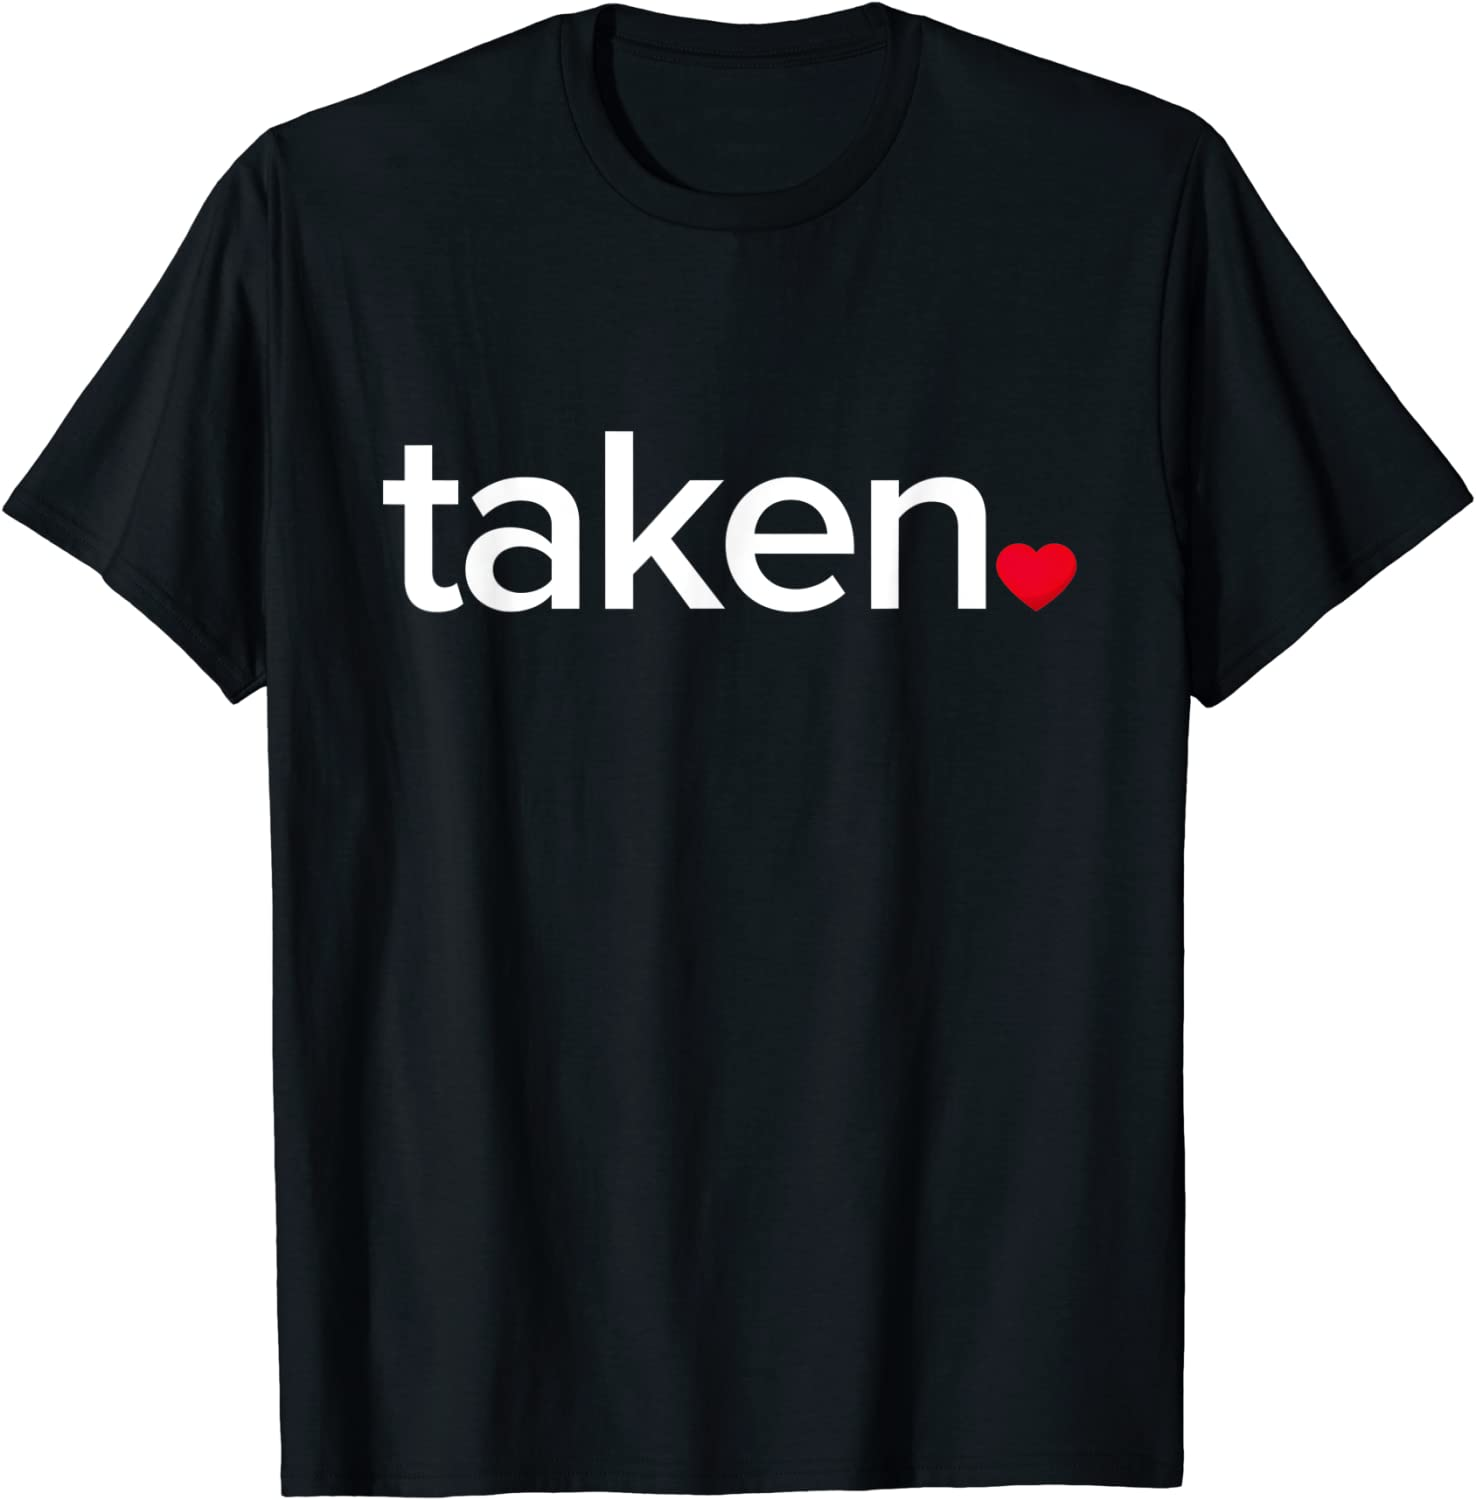 IN LOVE AND TAKEN T-SHIRT Great valentines Day tee